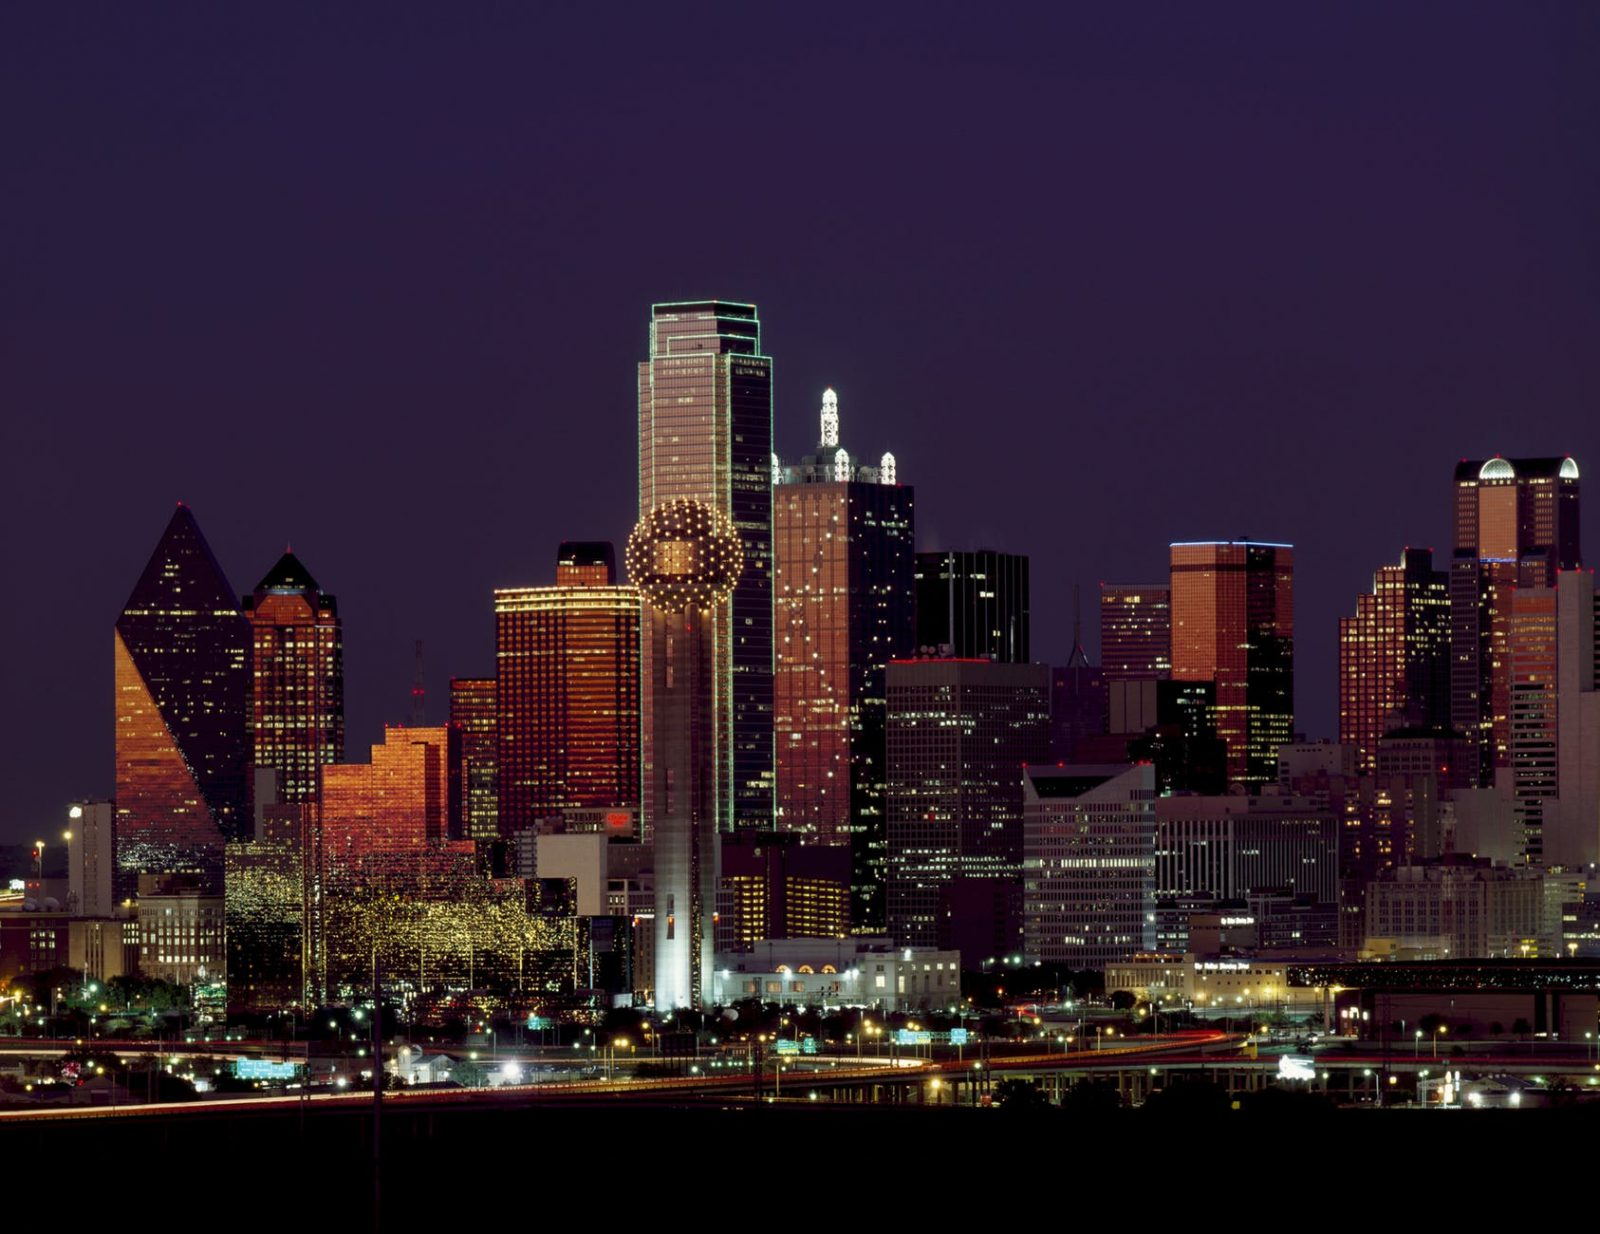 Flight Deal Round Trip From Chicago Area to Dallas Area #chicago #dallas #extendedweekend